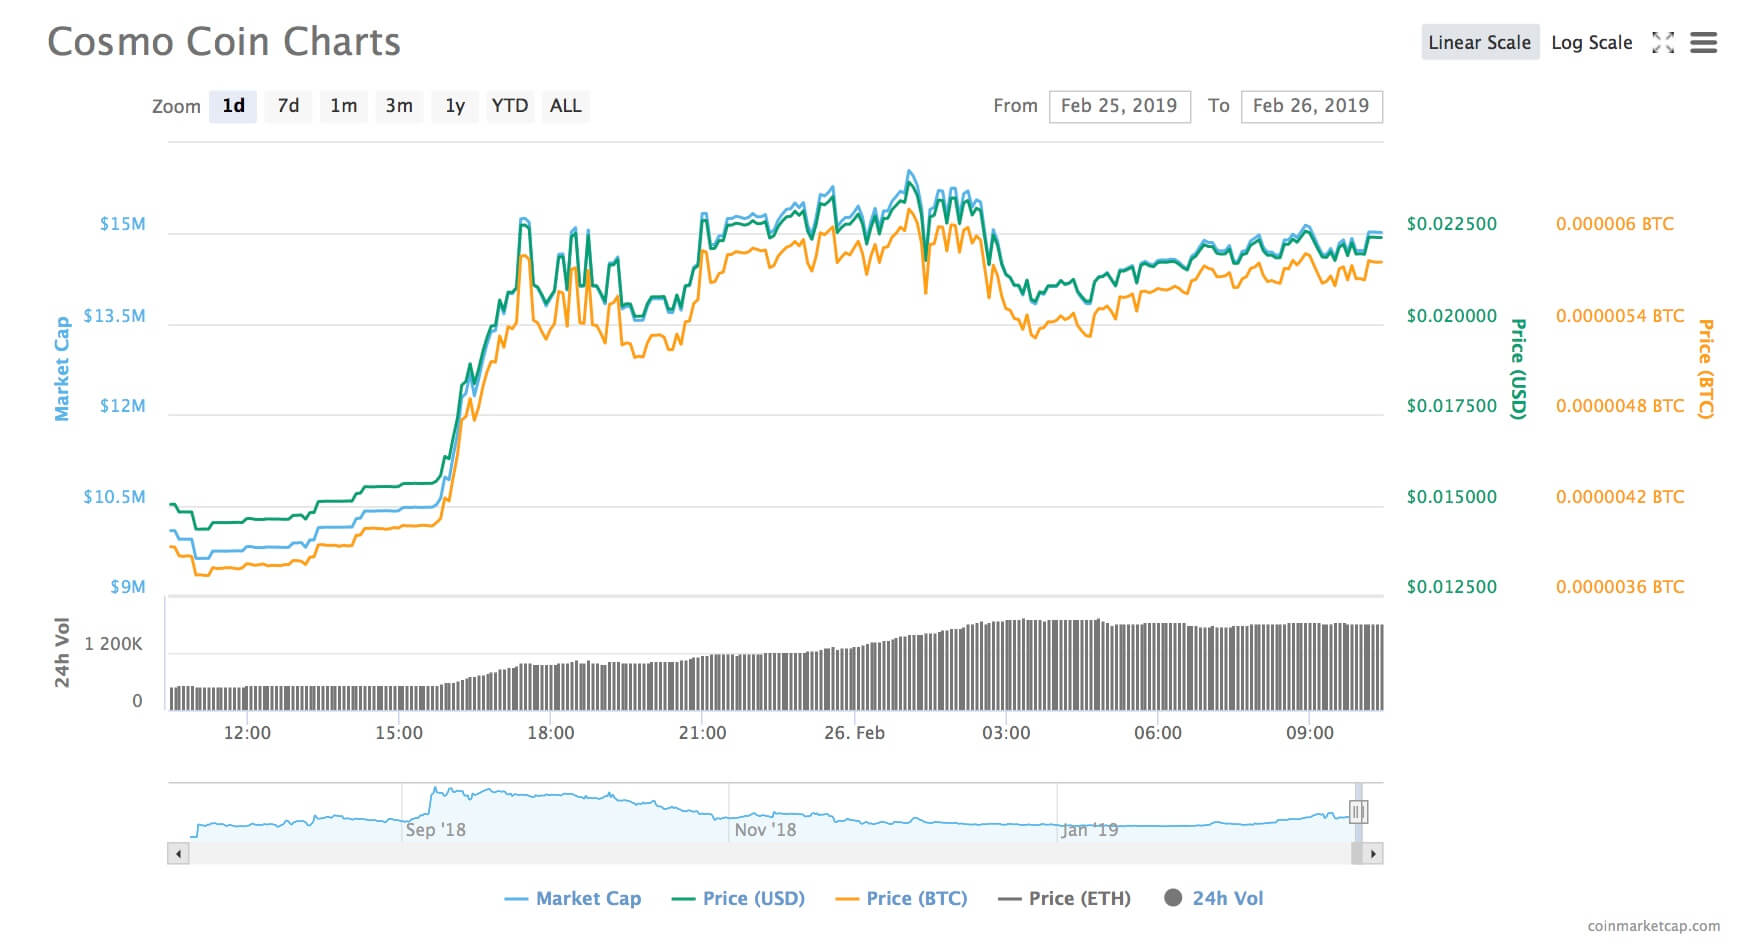 cosmo-coin-chart